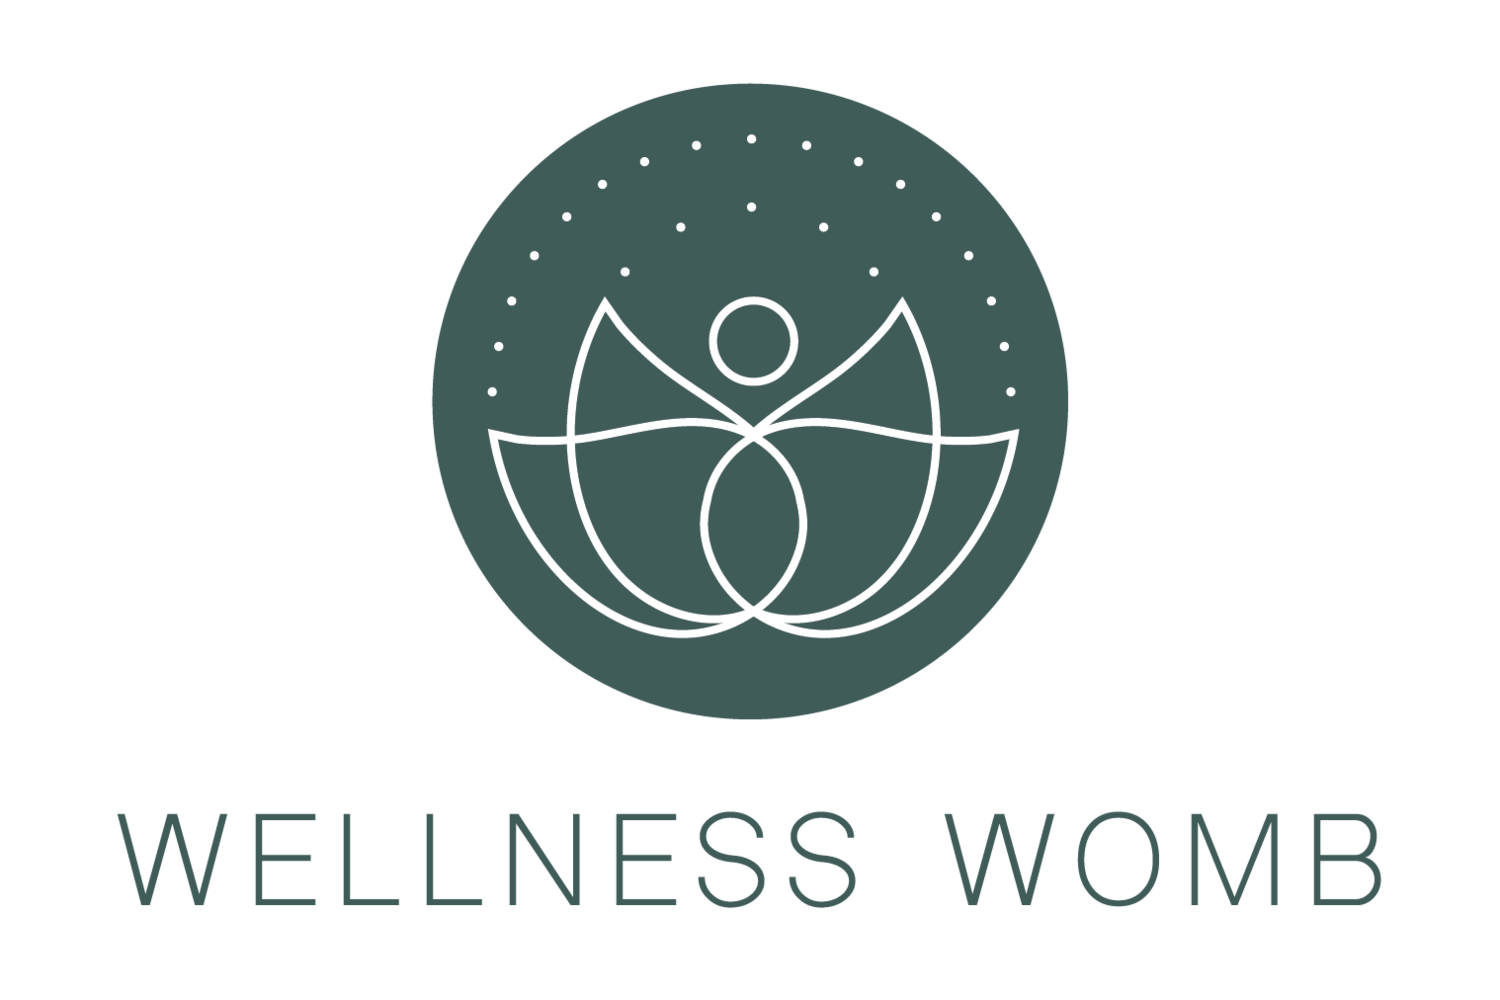 The Wellness Womb - Doula and Period Wellness